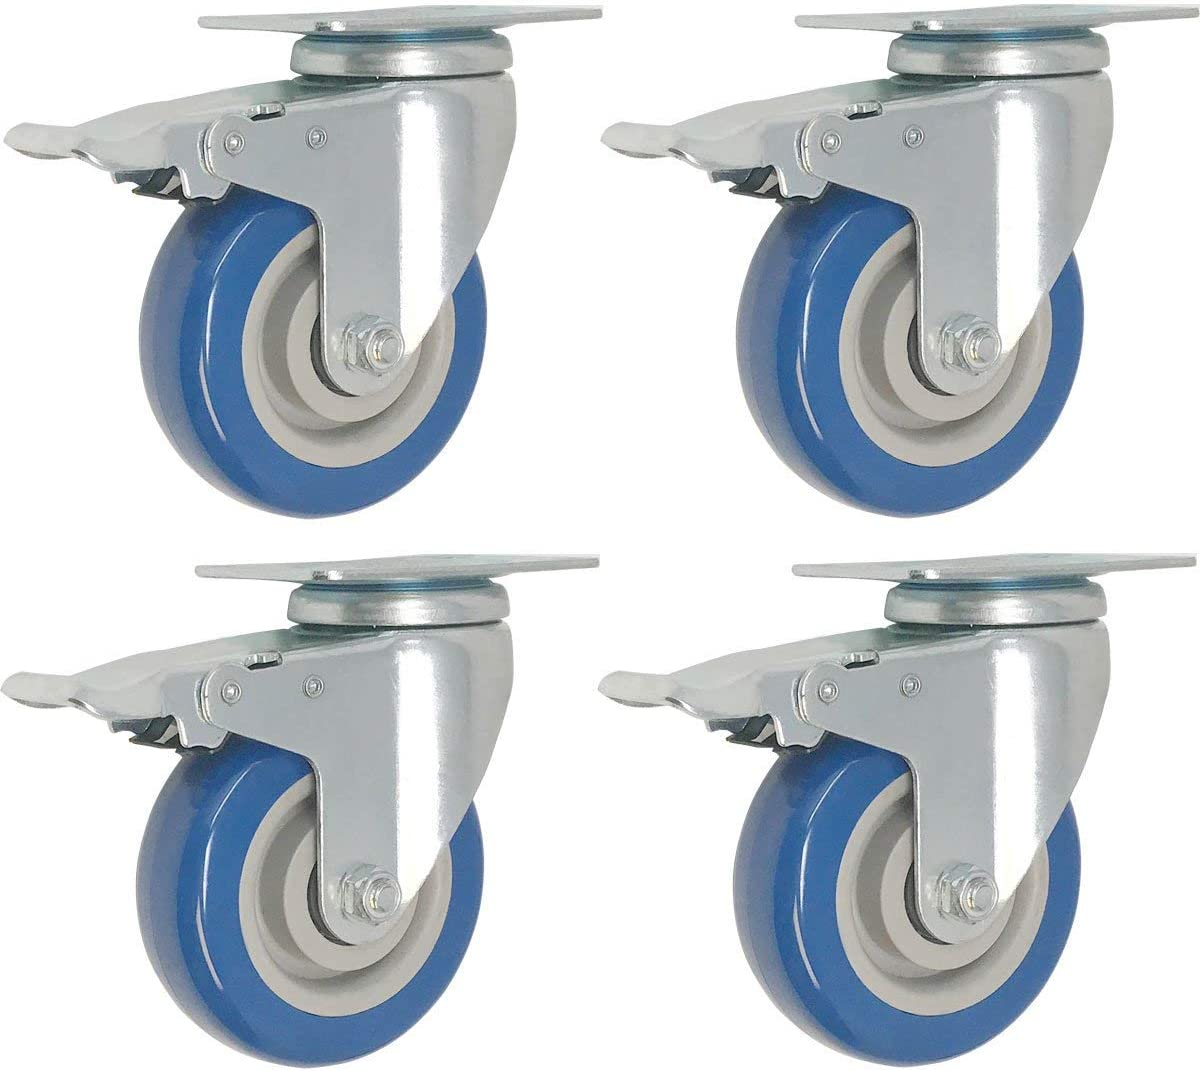 4 Pack Caster Wheels Swivel Plate w/Brake Casters On Blue Polyurethane Wheels (5 inch with Brake)